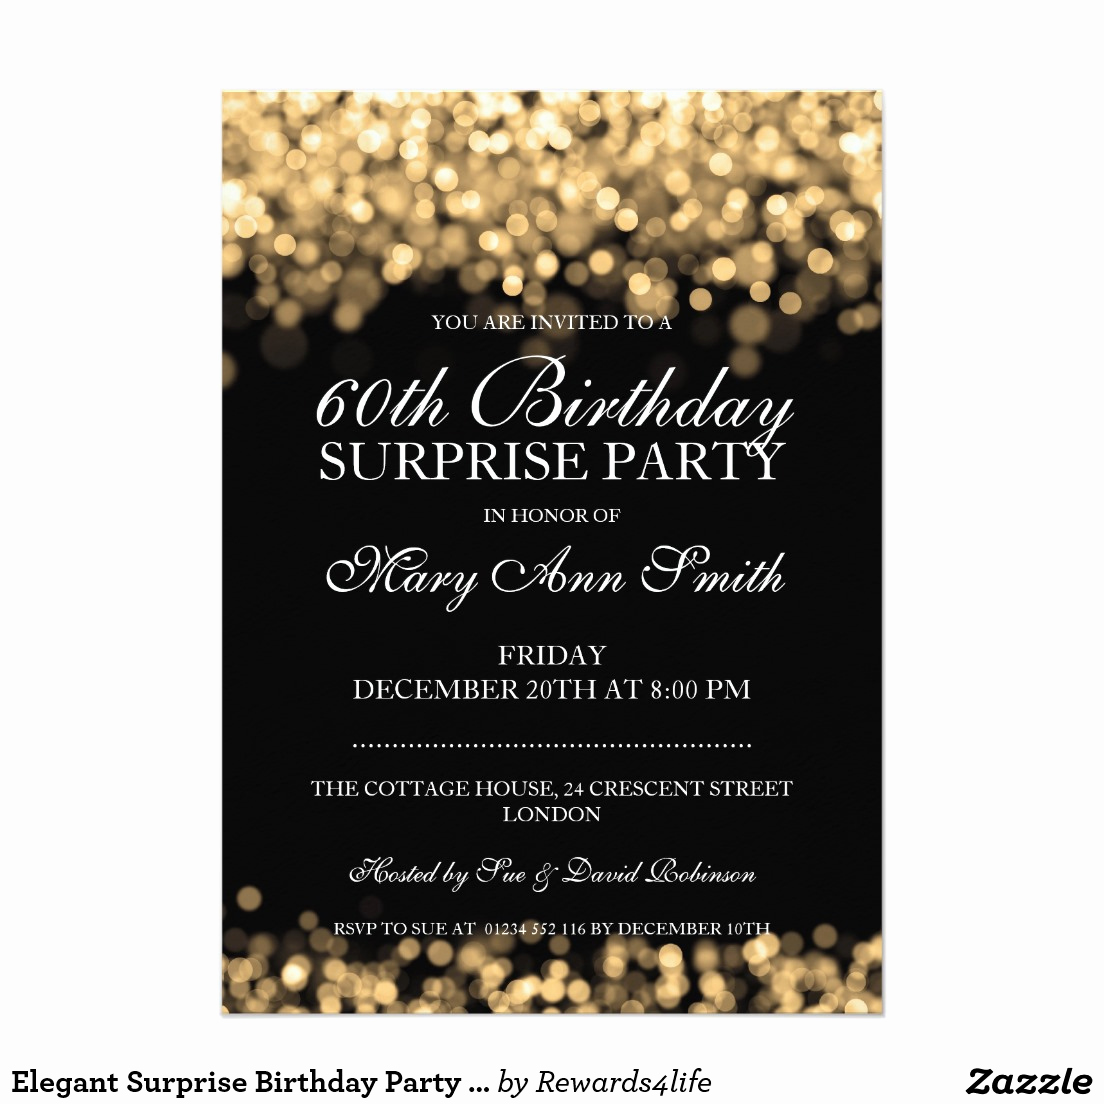 60th Birthday Party Invitation Wording Inspirational Surprise 60th Birthday Invitation Wording